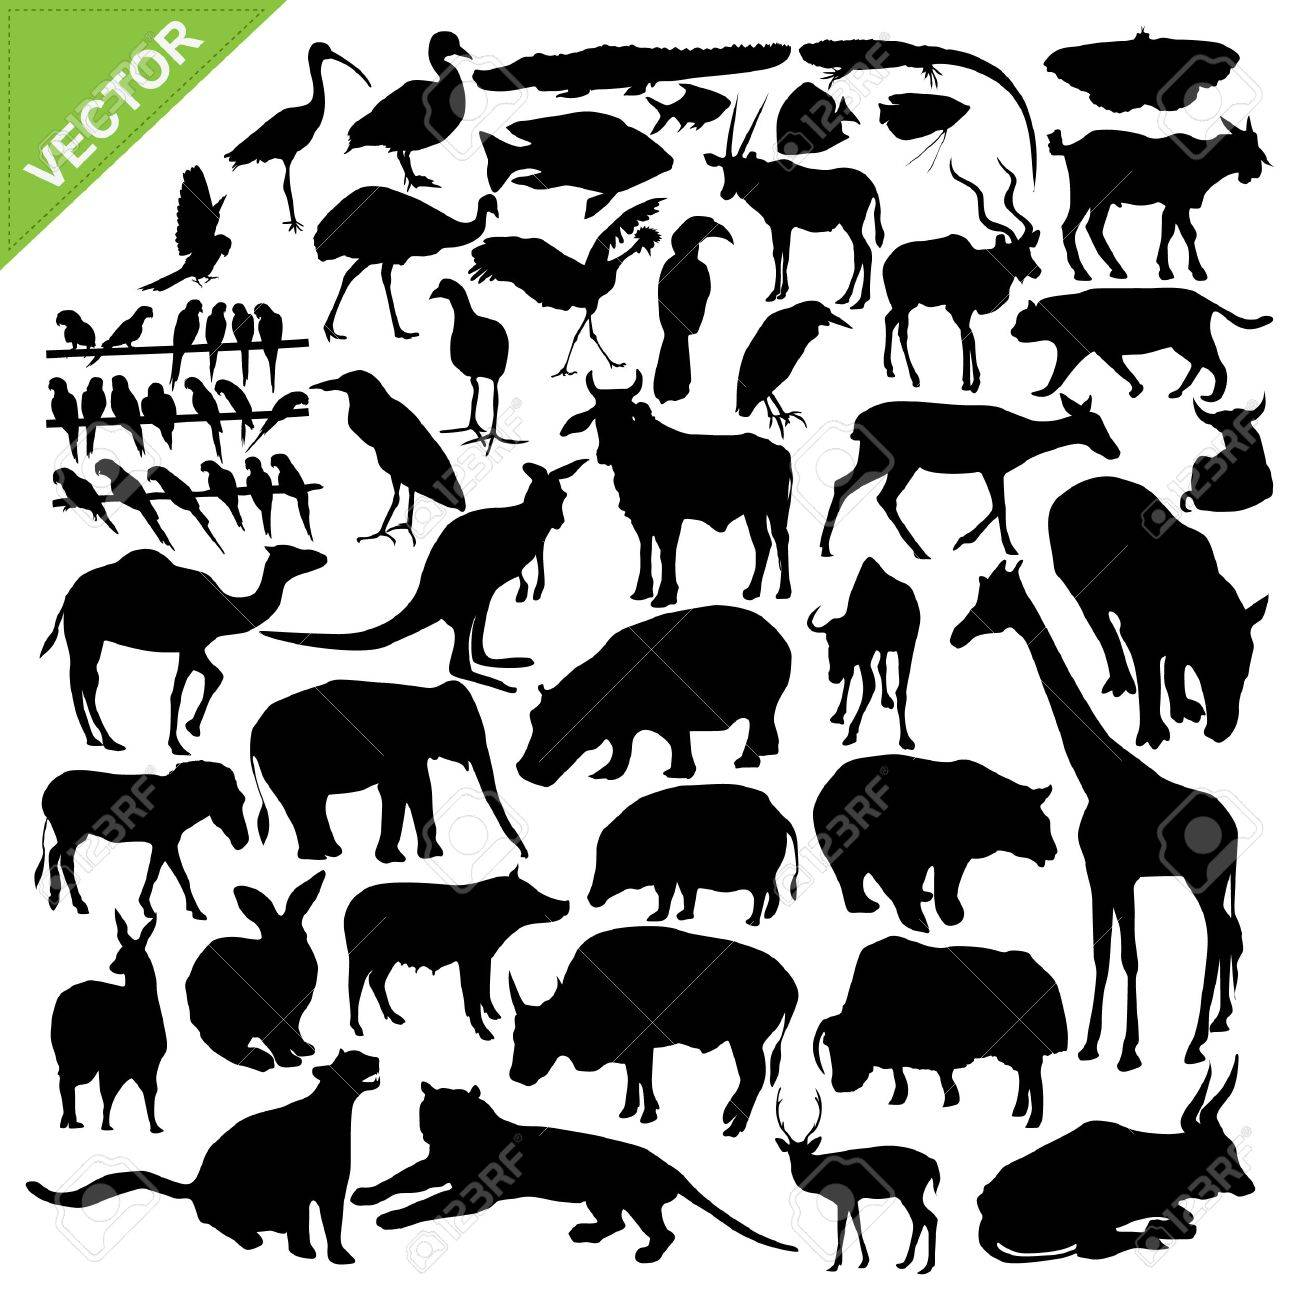 Animals silhouettes collections Stock Vector - 16028117